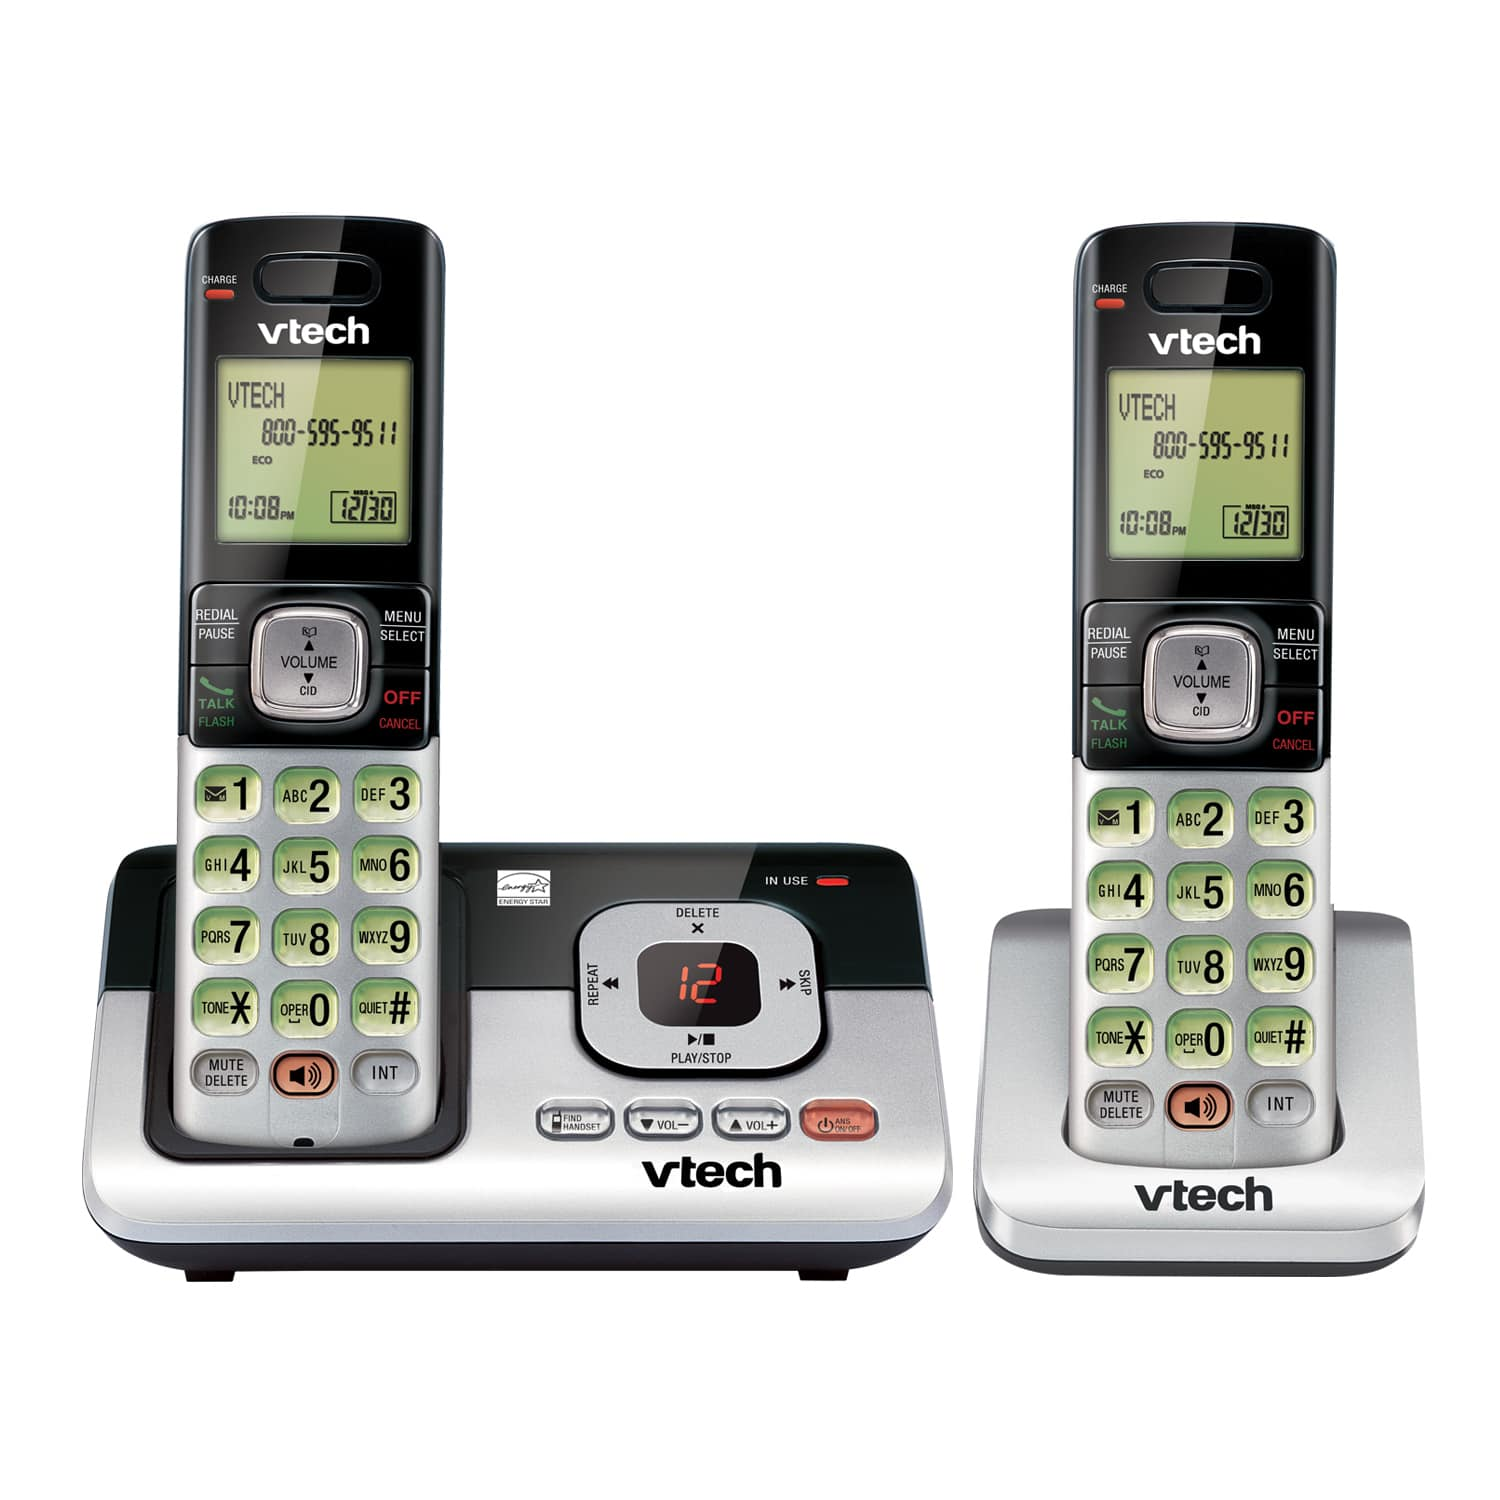 cd3eb40923e 2 Handset Answering System with Caller ID Call Waiting